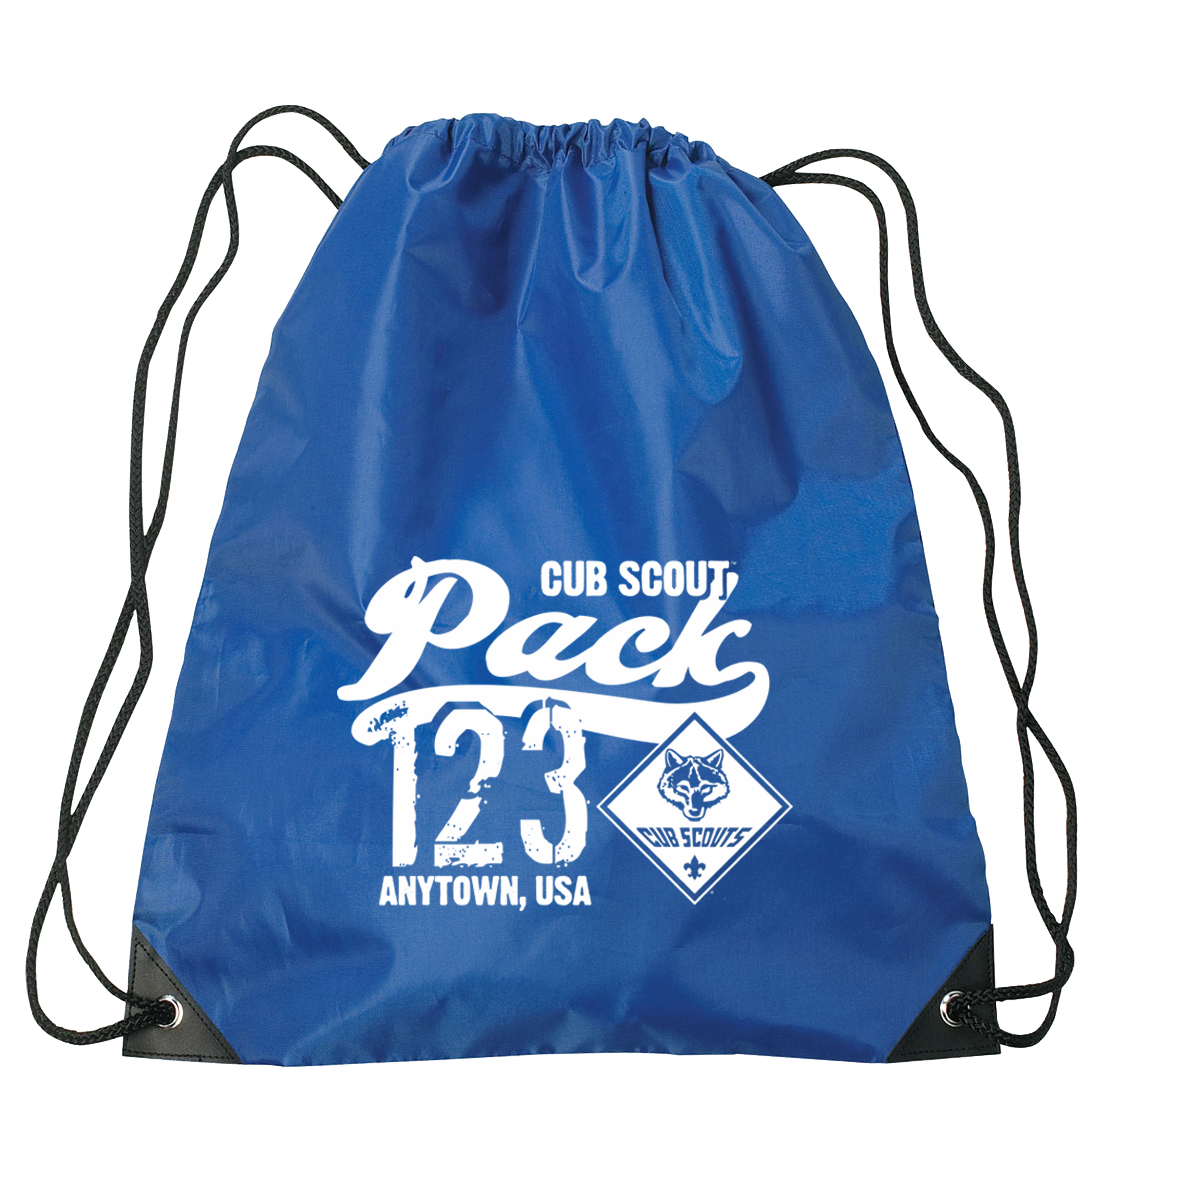 af8f16b70047 Drawstring bag with Cub Scout designs - 150 pcs - ClassB